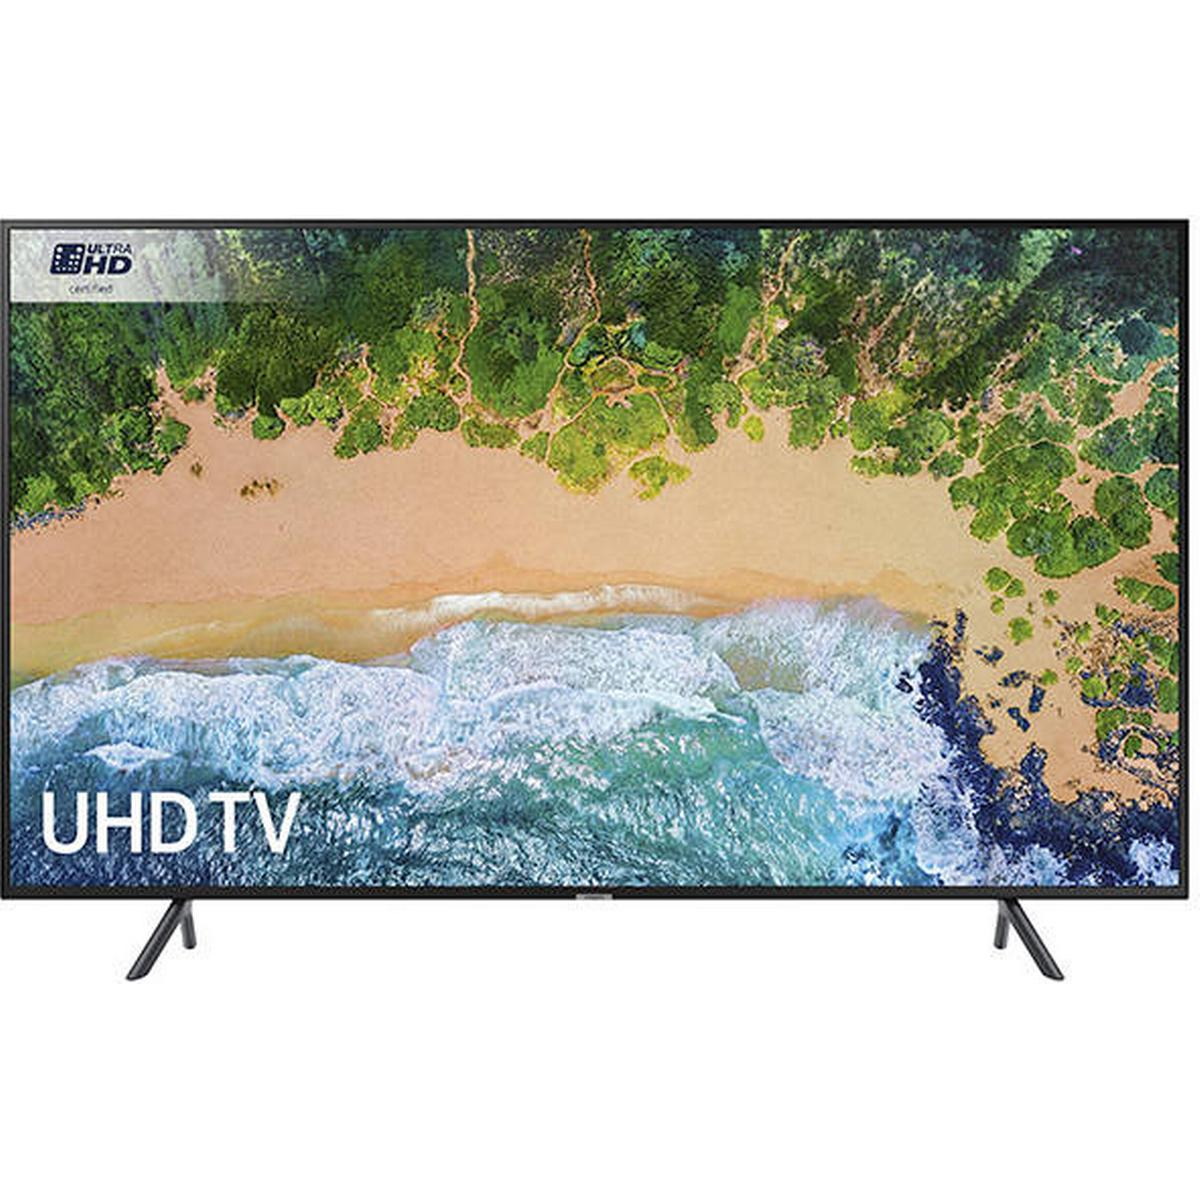 TV prices - Compare flat screen TVs deals when buying a